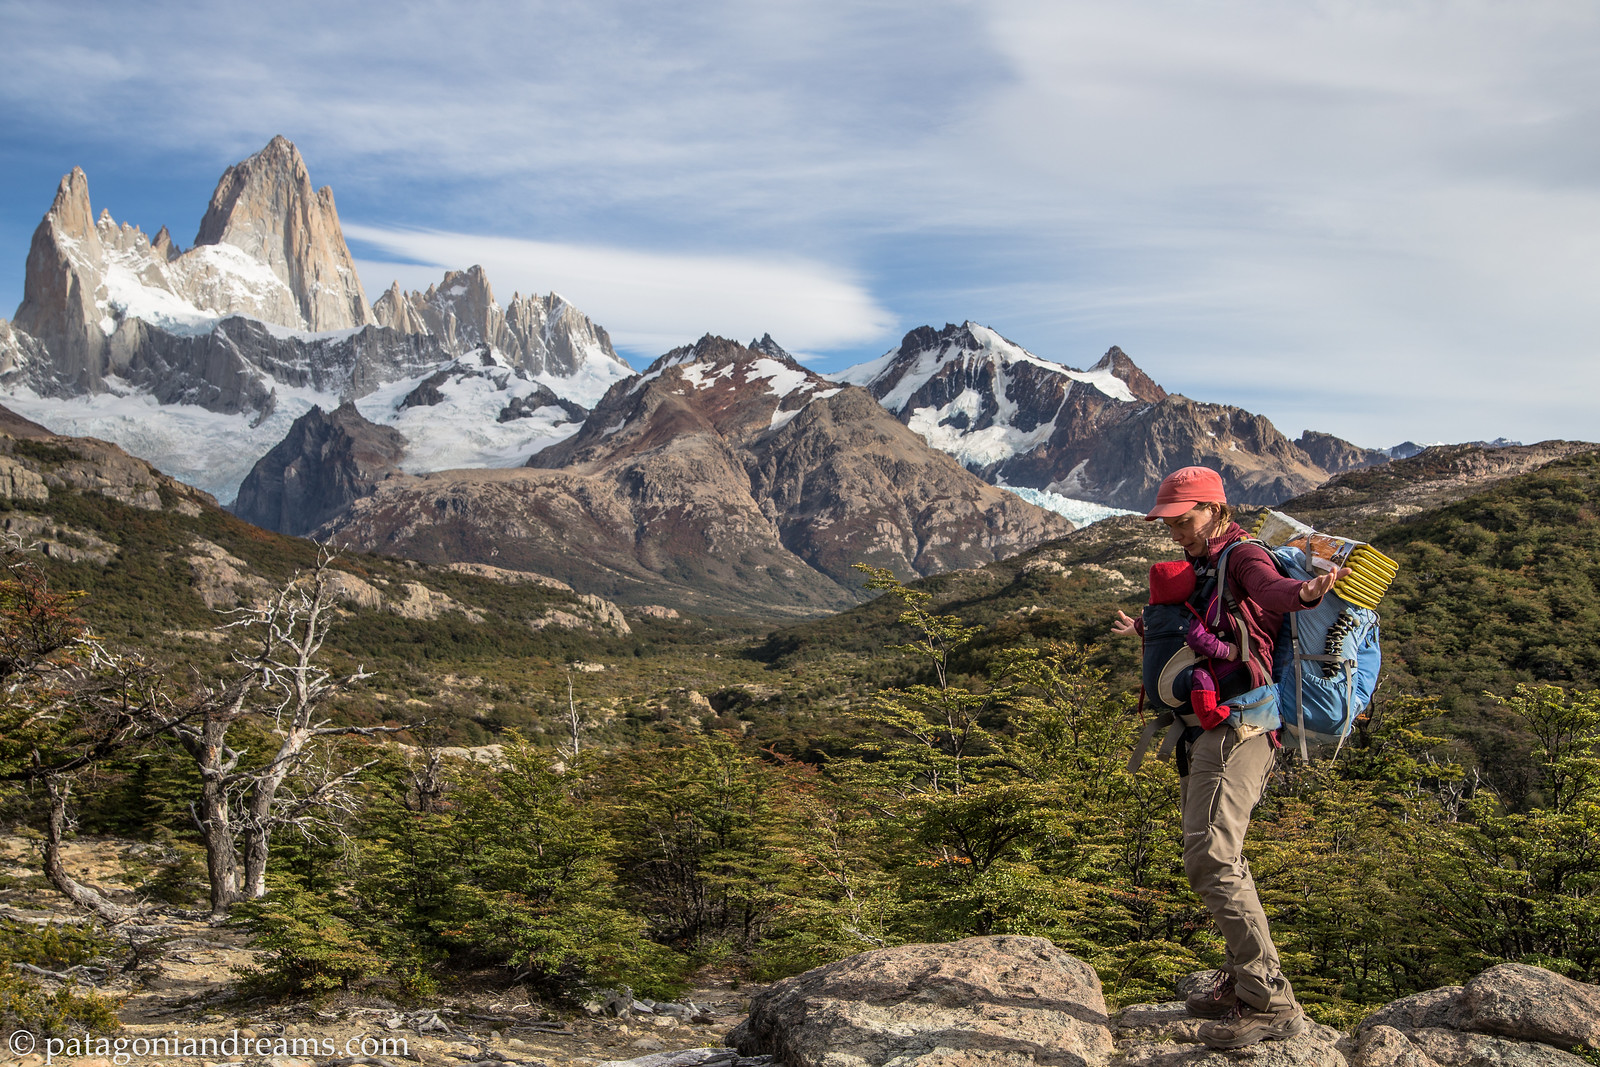 Hang on there. Pic from day 38 on the 6-week adventure. Fitz Roy range. Parque Nacional Los Glaciares. Santa Cruz. Patagonia. Argentina.